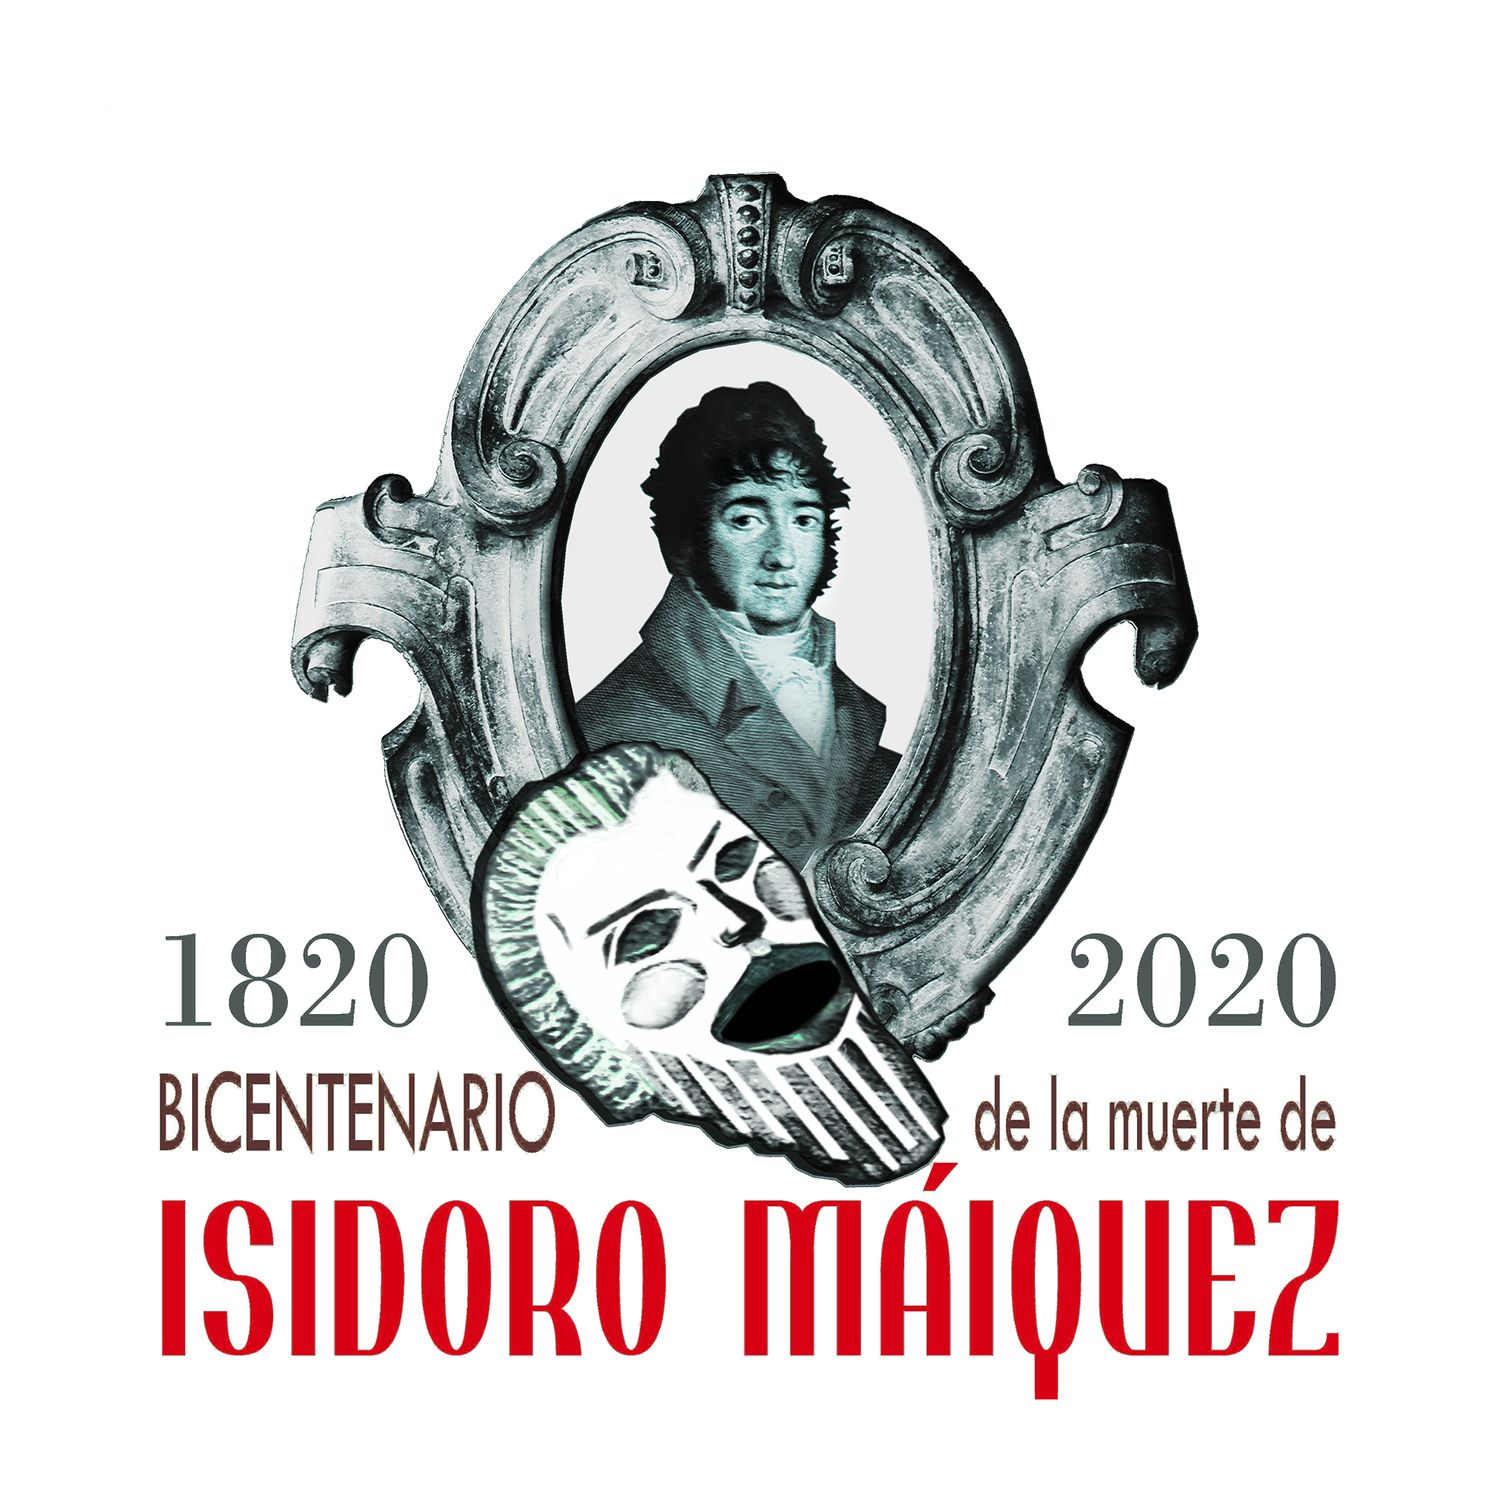 Isidoro Maíquez